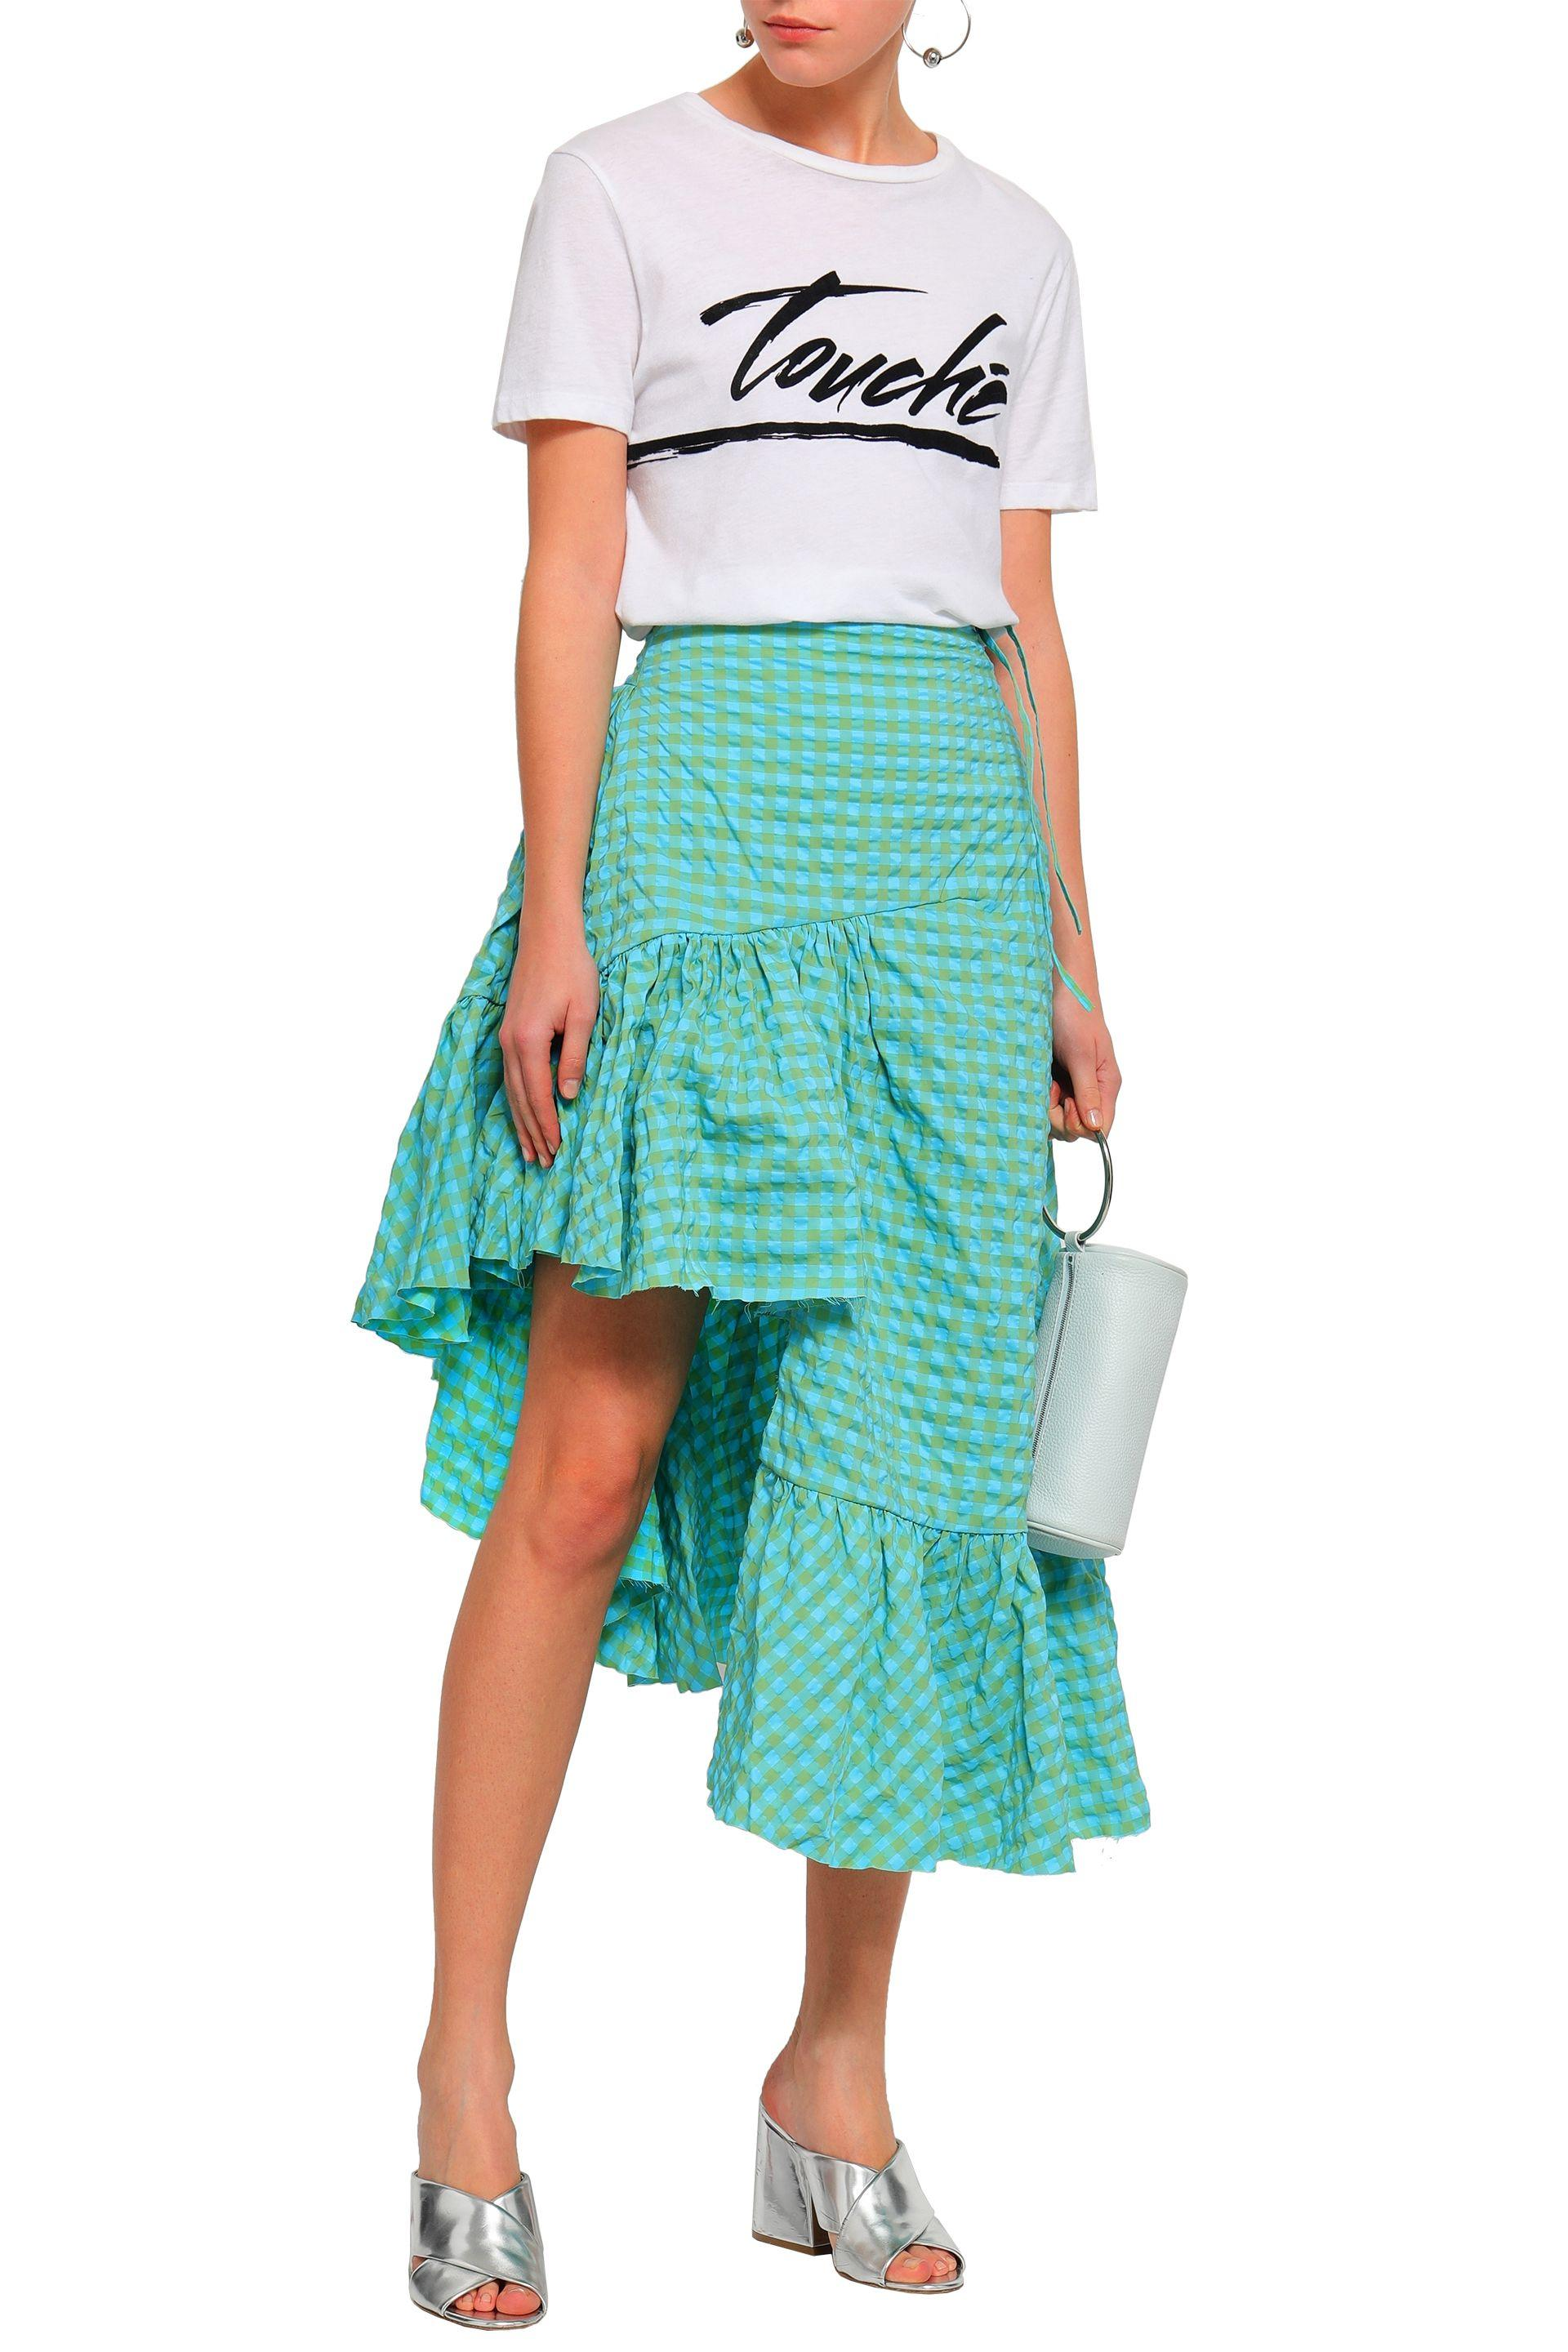 539965fe01 Marques'Almeida - Blue Woman Asymmetric Ruffled Gingham Seersucker Skirt  Turquoise - Lyst. View fullscreen